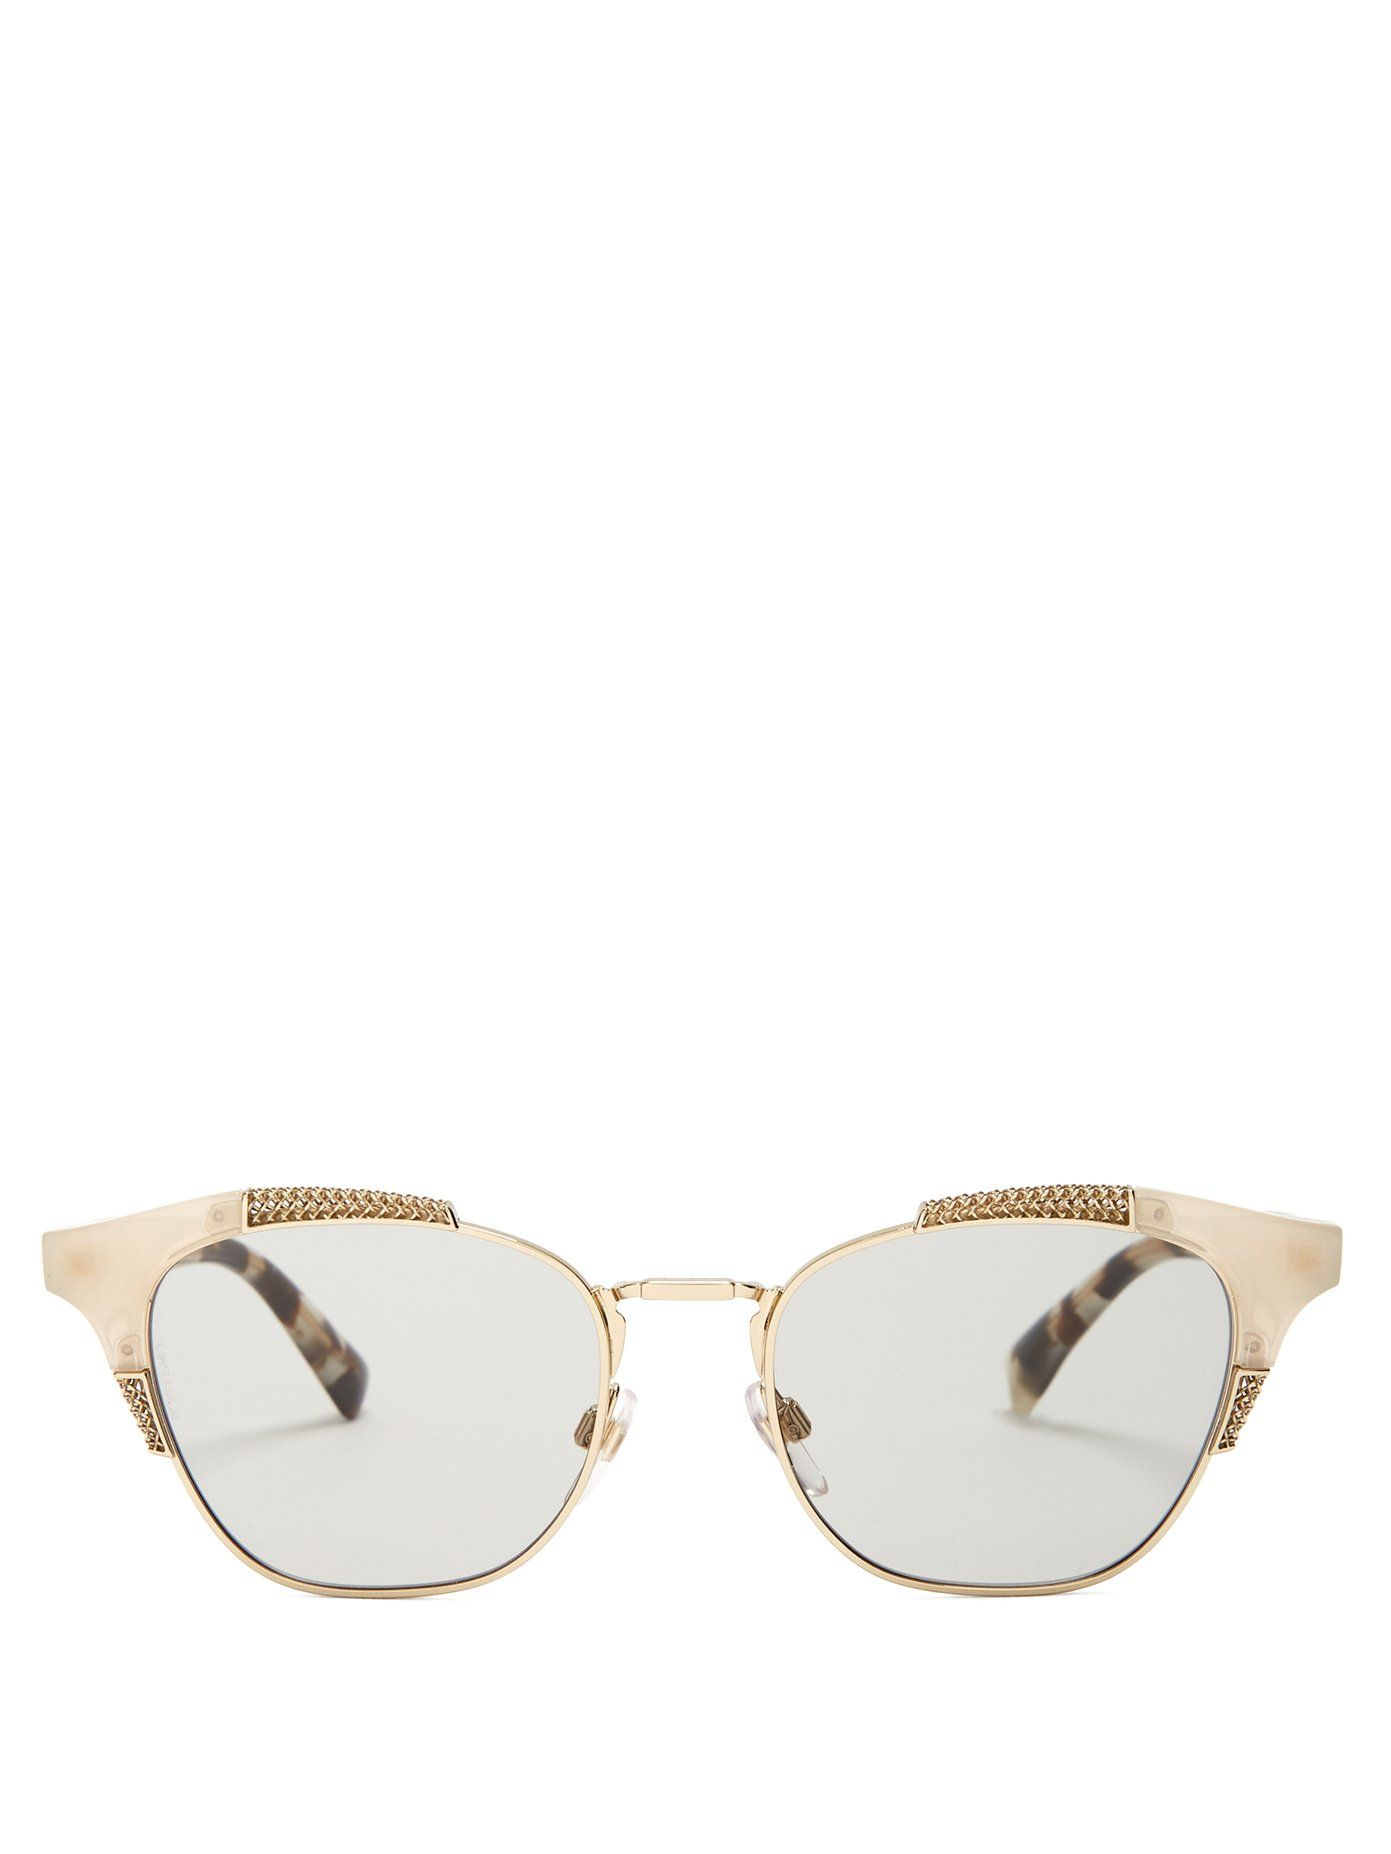 Cat-eye metal and acetate sunglasses Valentino 01r3jVKbtZ